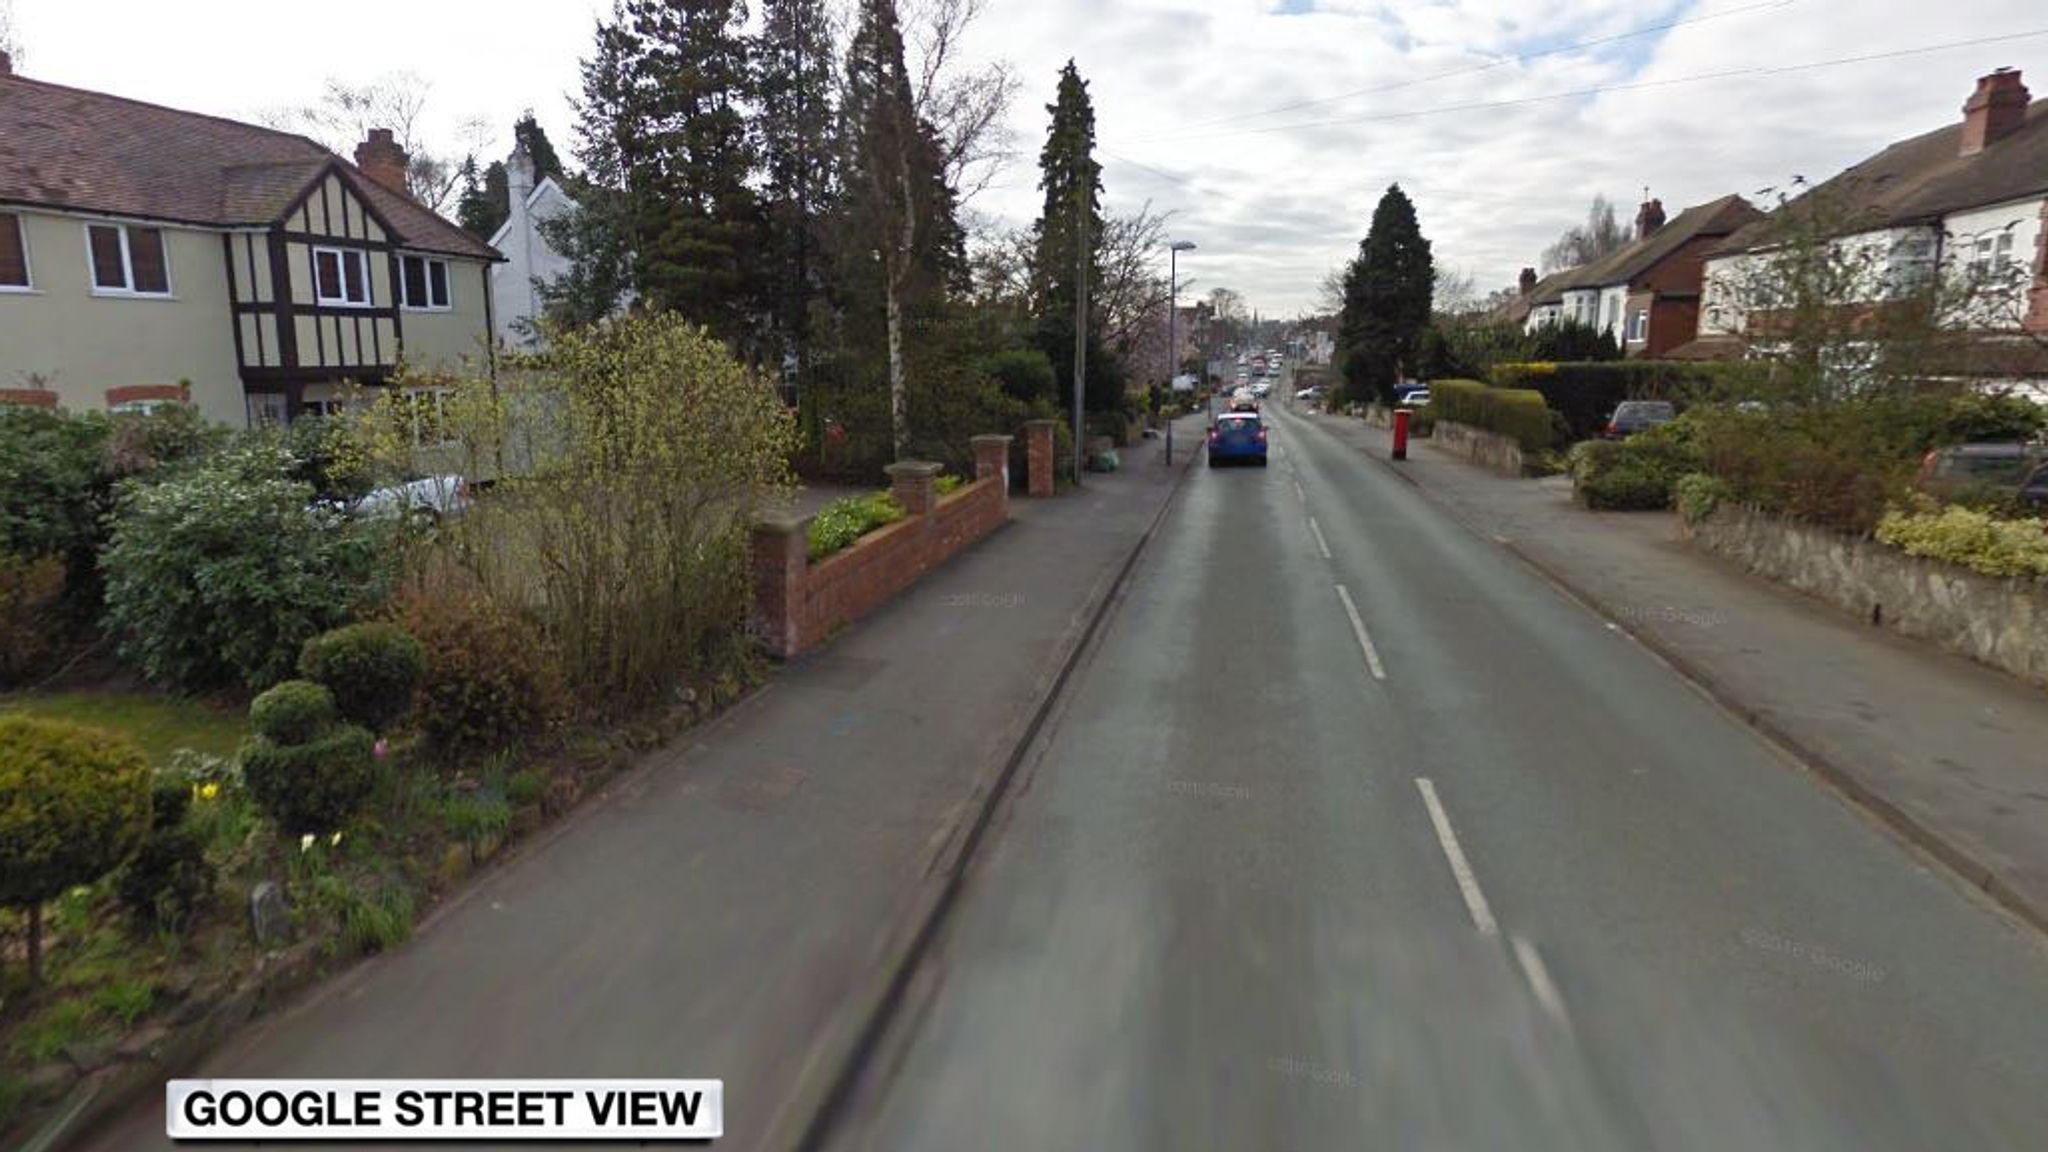 Man and woman arrested after pensioner dies from head injuries in his home